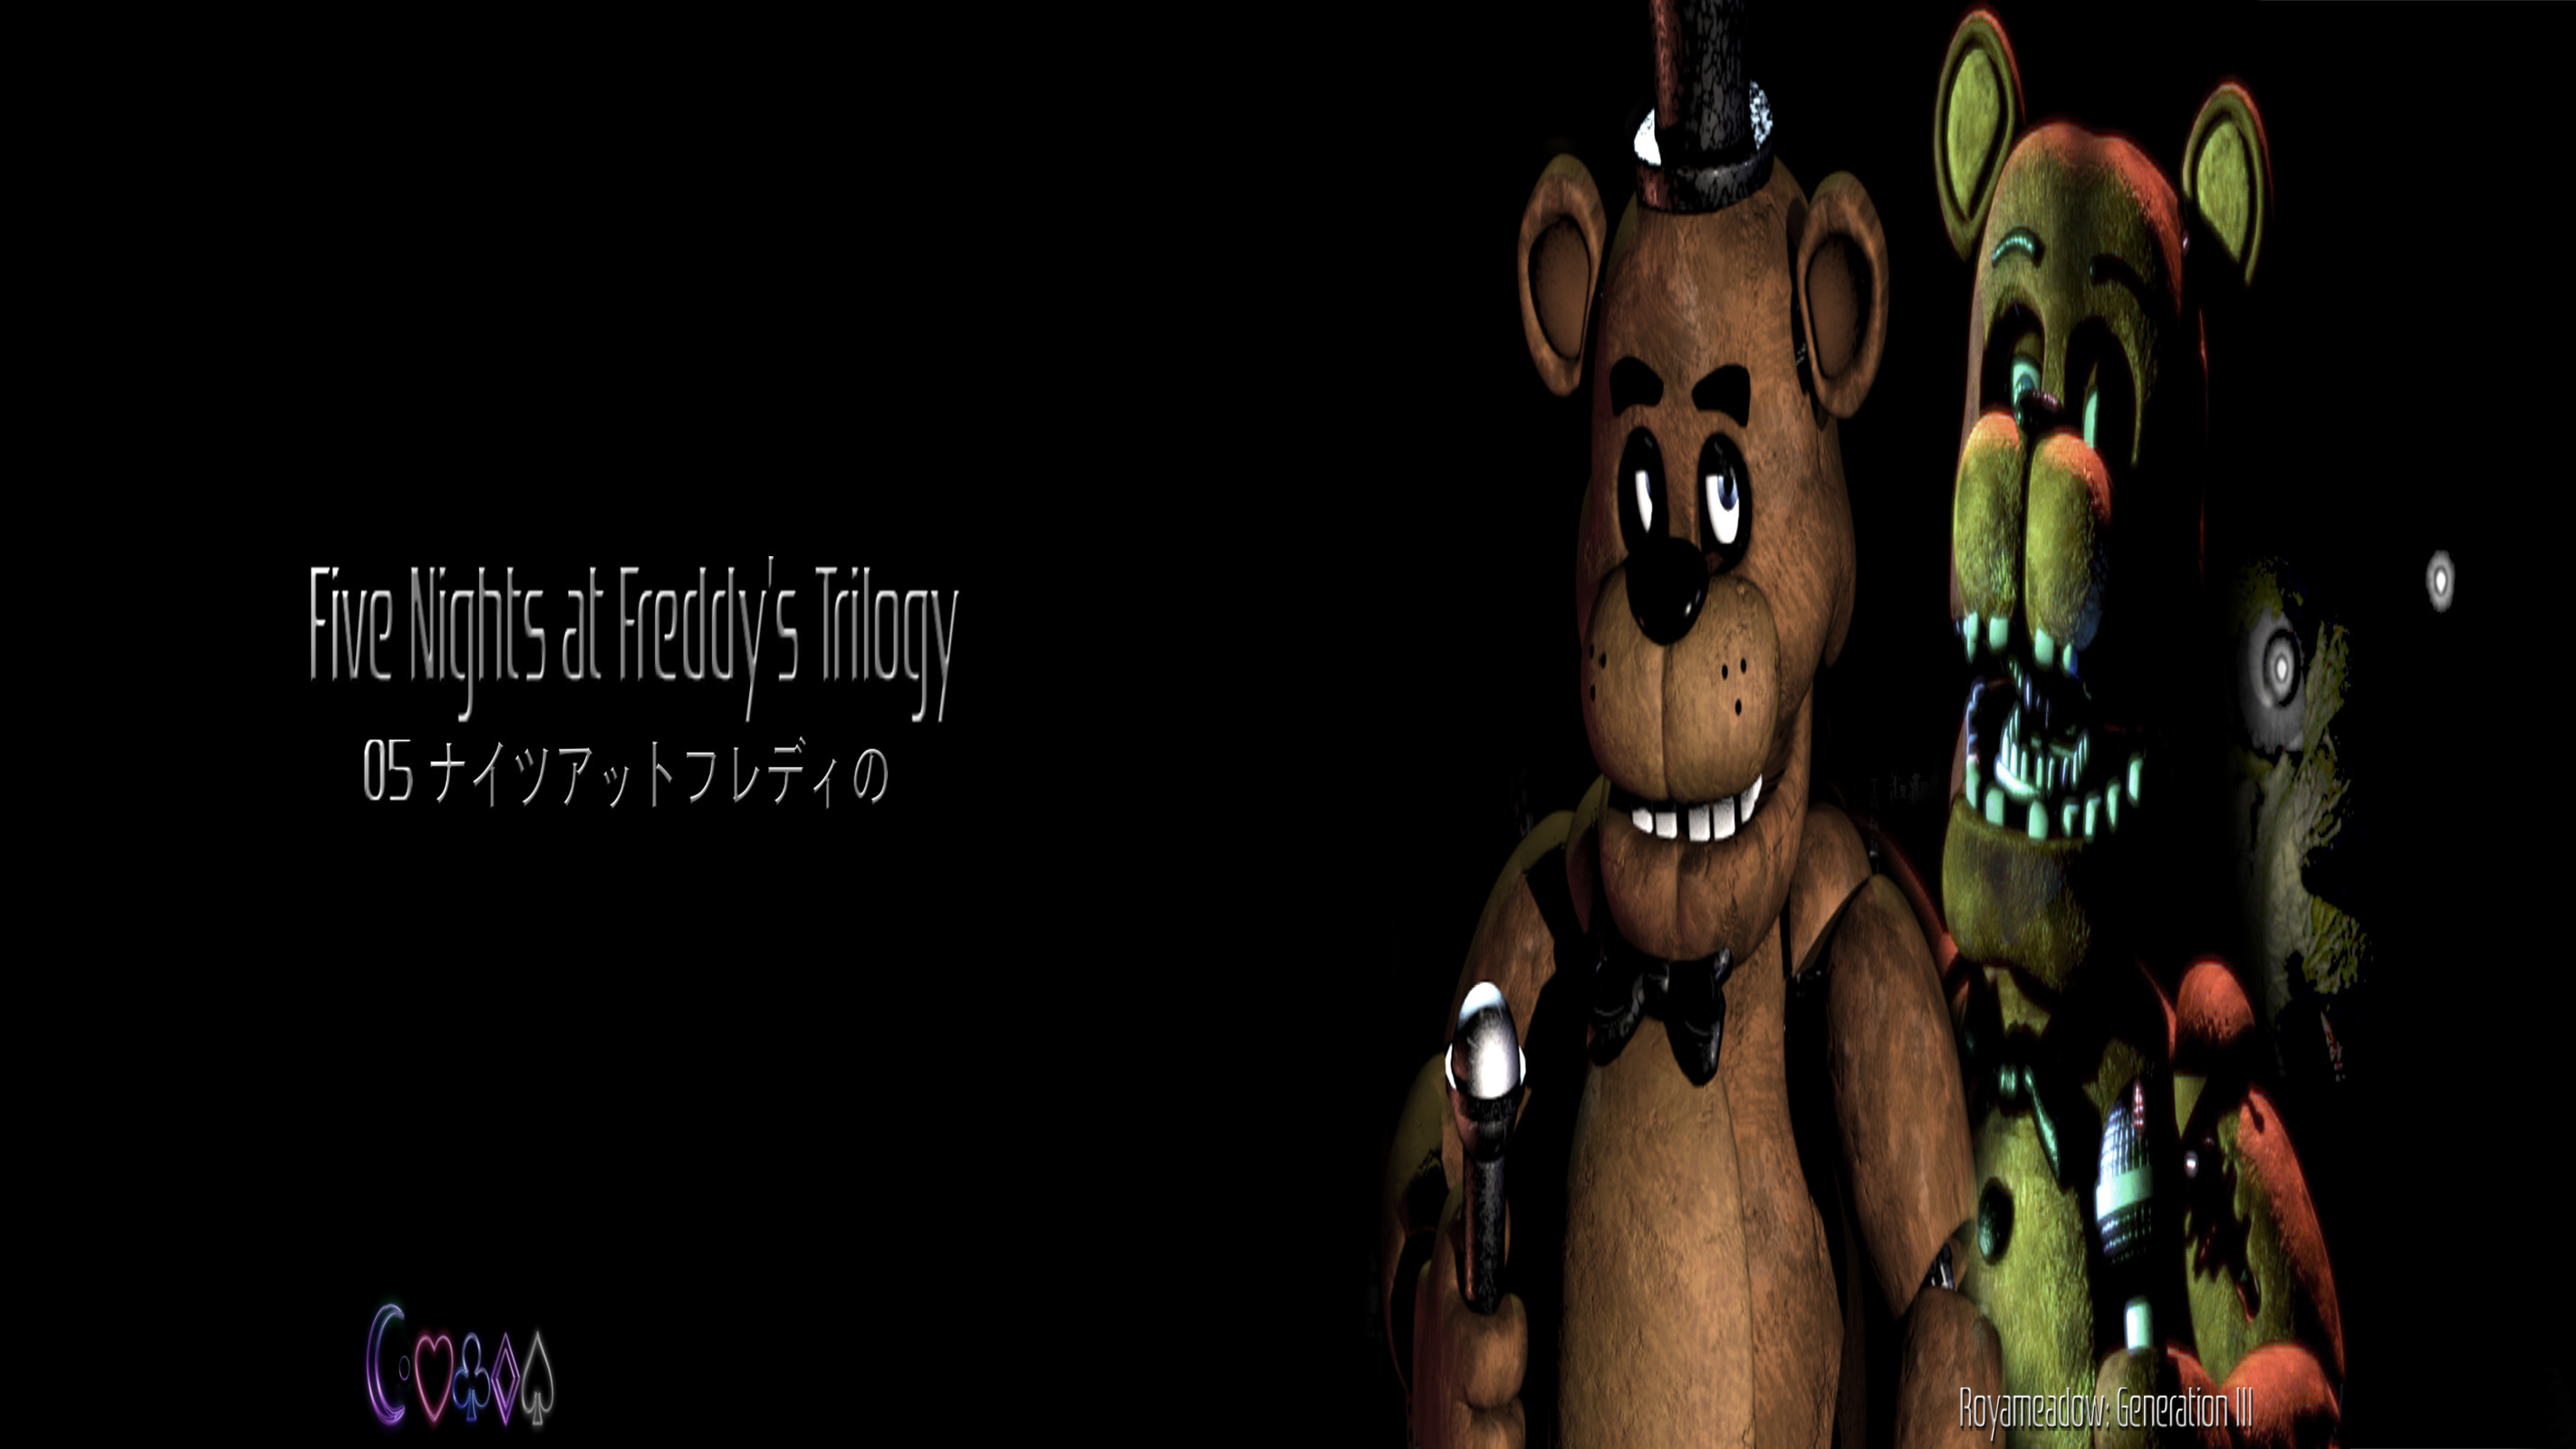 … Five Nights at Freddy's Trilogy: Video Wallpaper by Royameadow